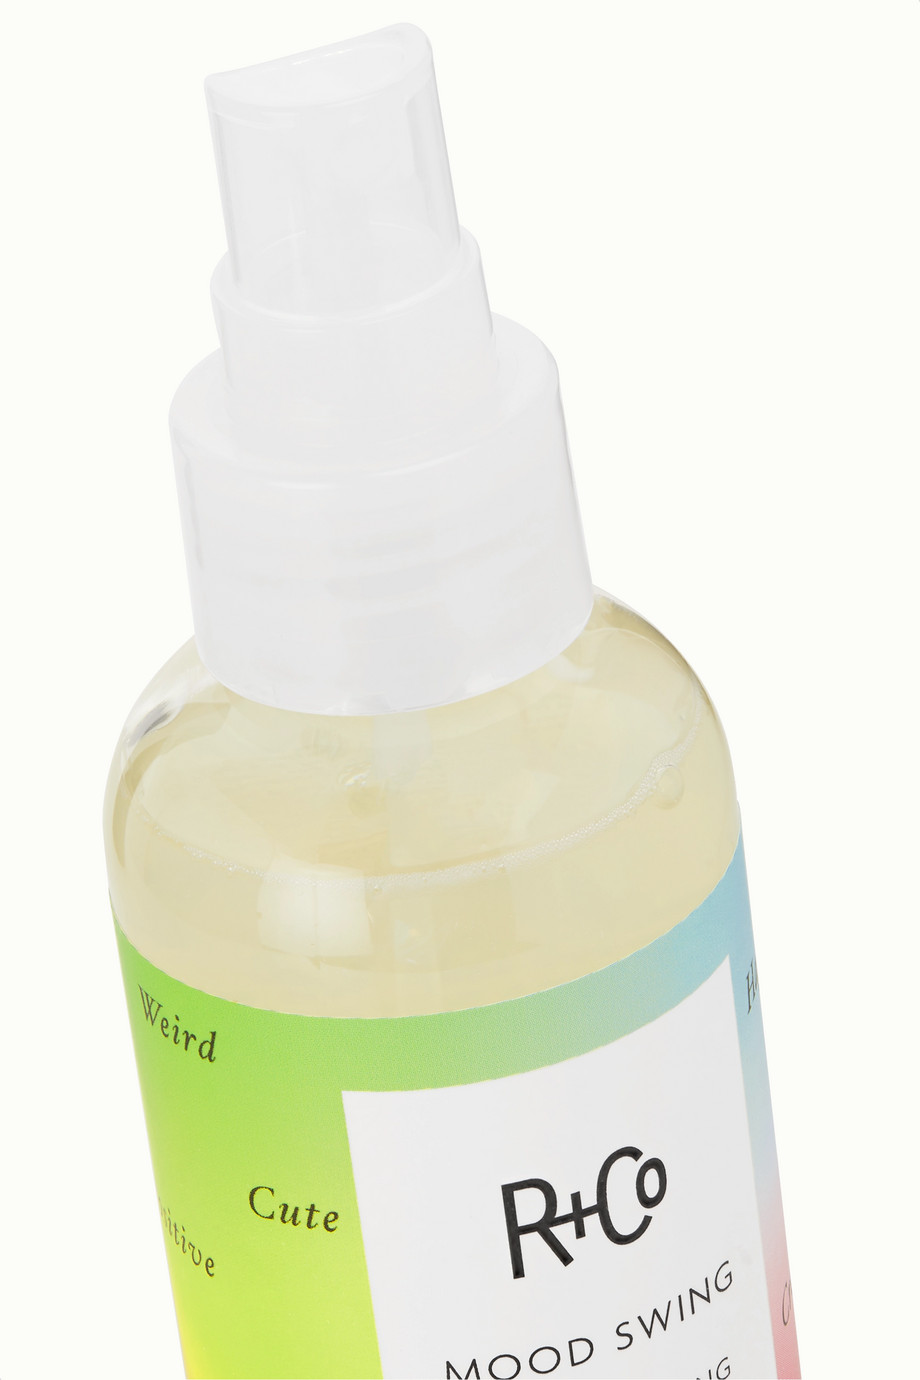 R+CO Mood Swing Straightening Spray, 119ml